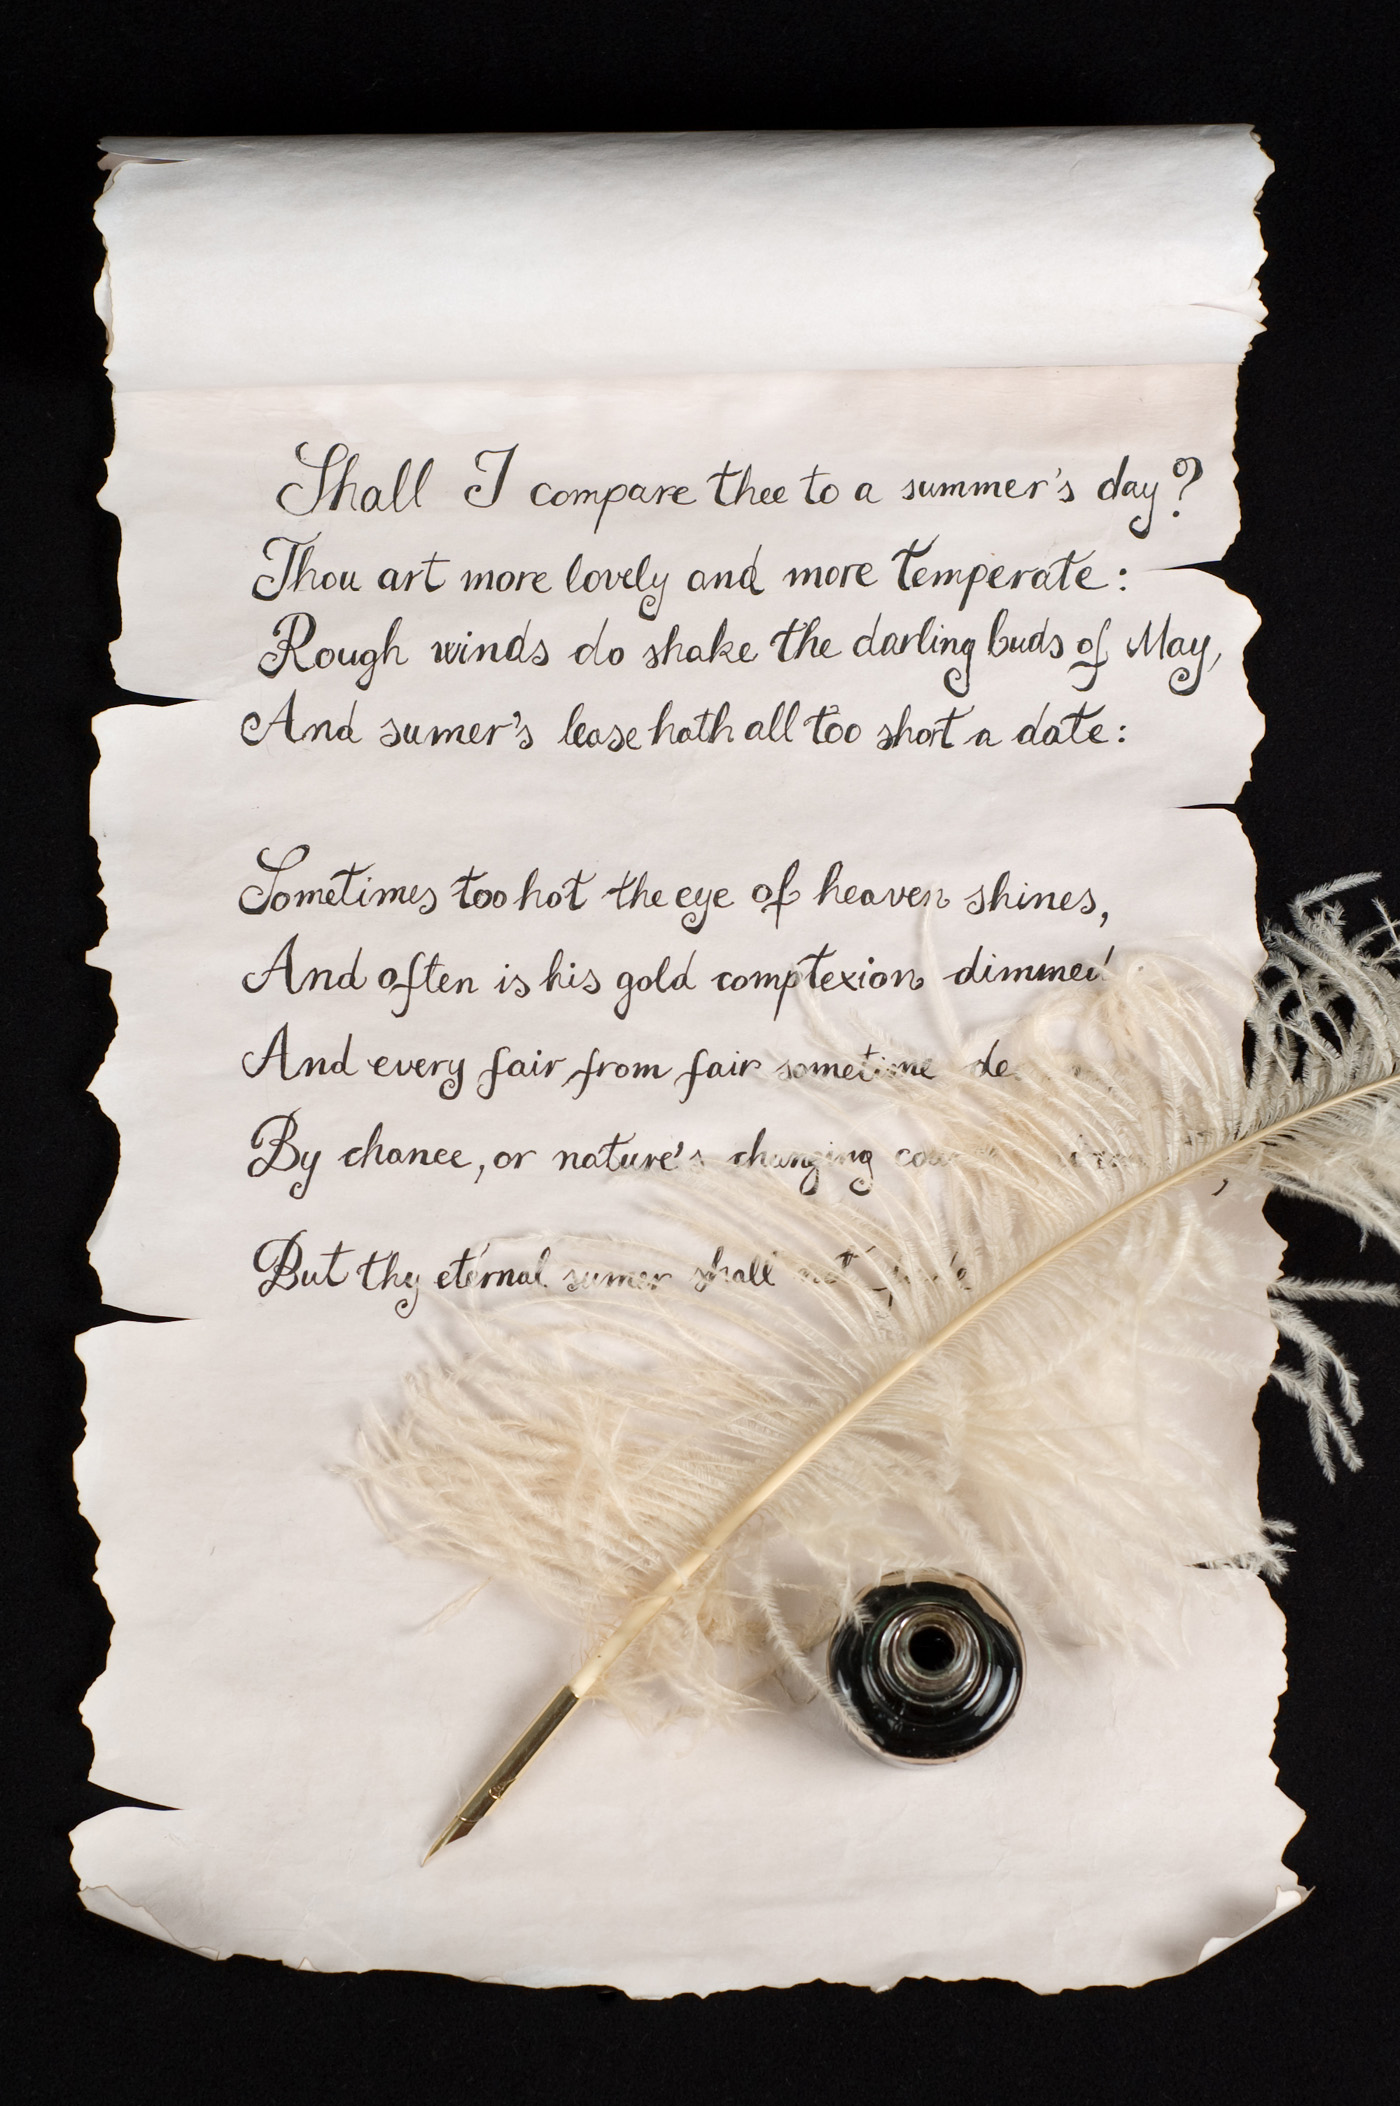 Feather pen and scrolls 6664